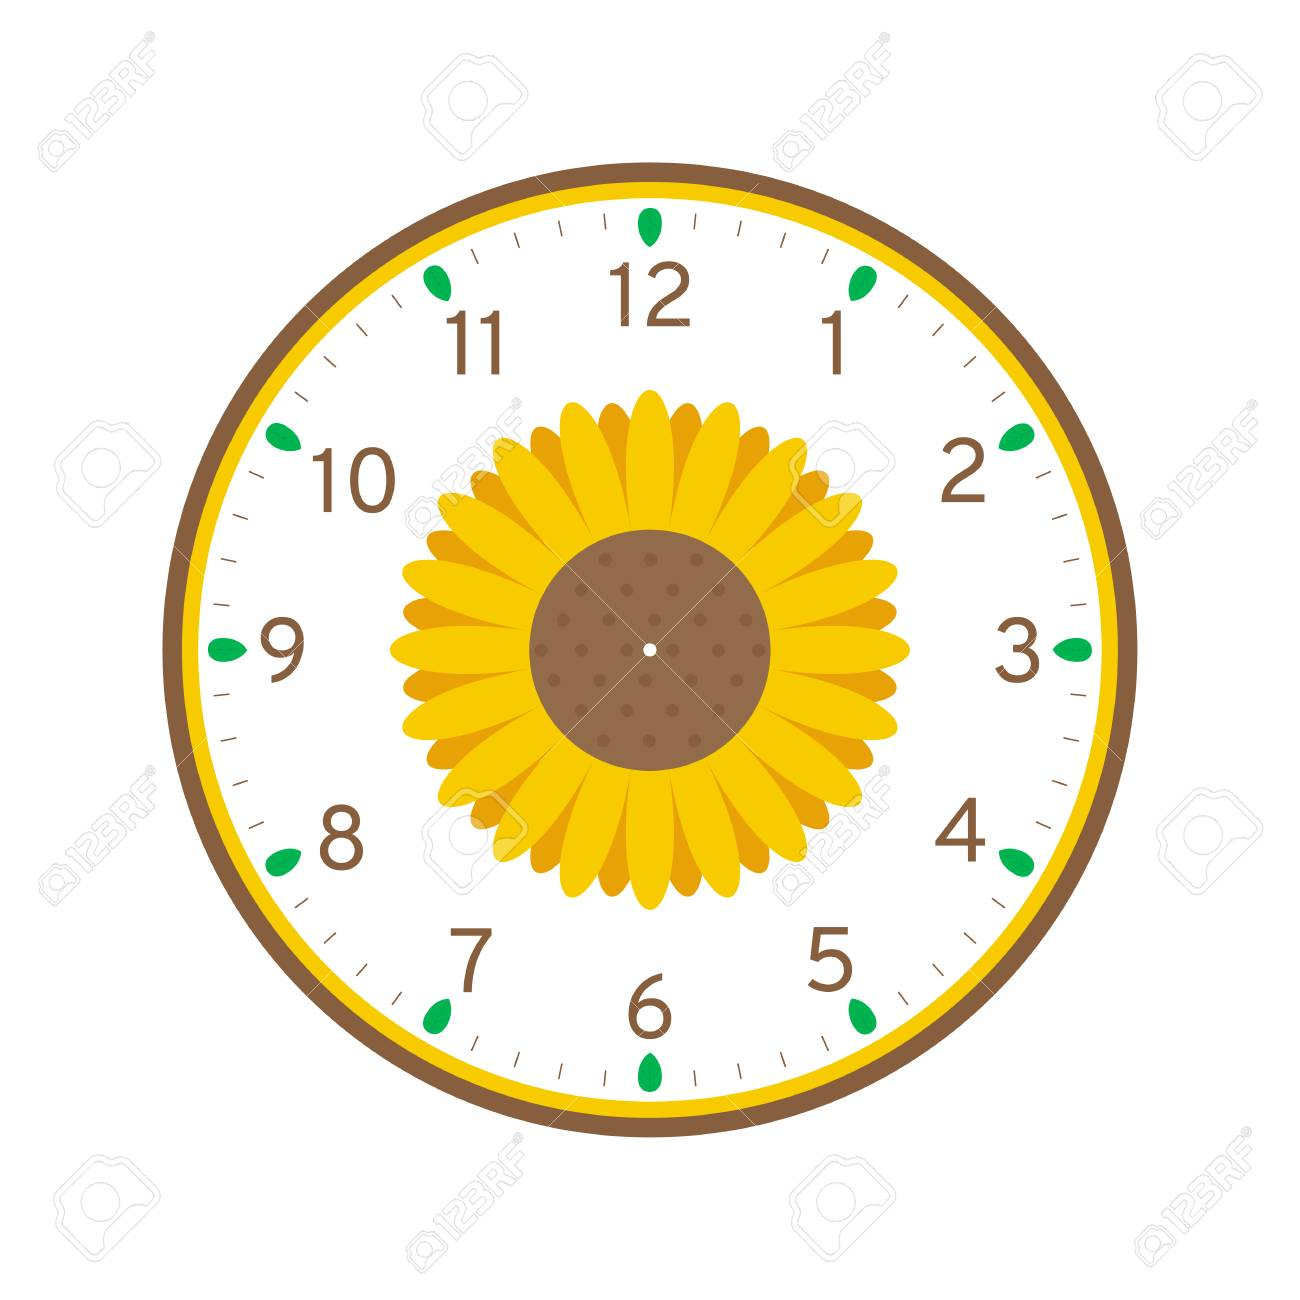 photograph relating to Sunflower Printable identify Sunflower Printable Clock Deal with Template Isolated upon White Record